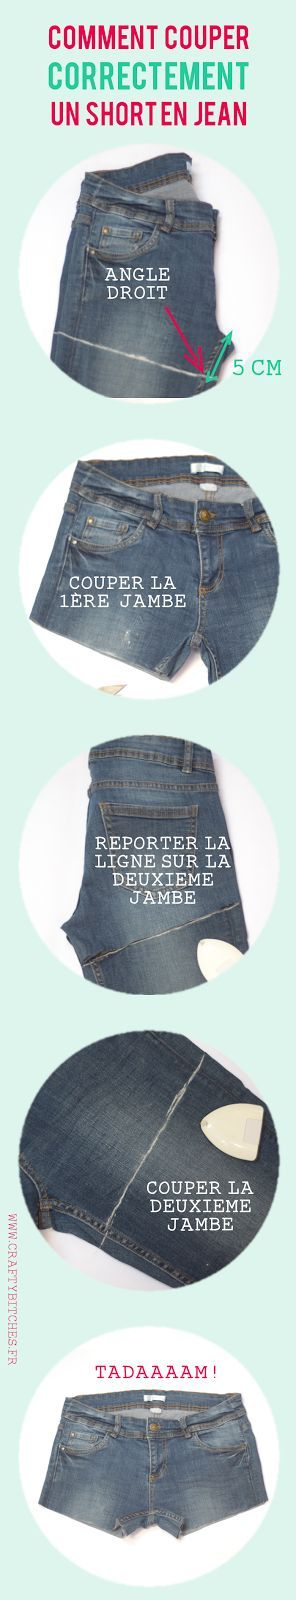 Comment couper un short en jean sans faire de massacre courroies d 39 attache jean court et - Comment couper un pantalon en short ...